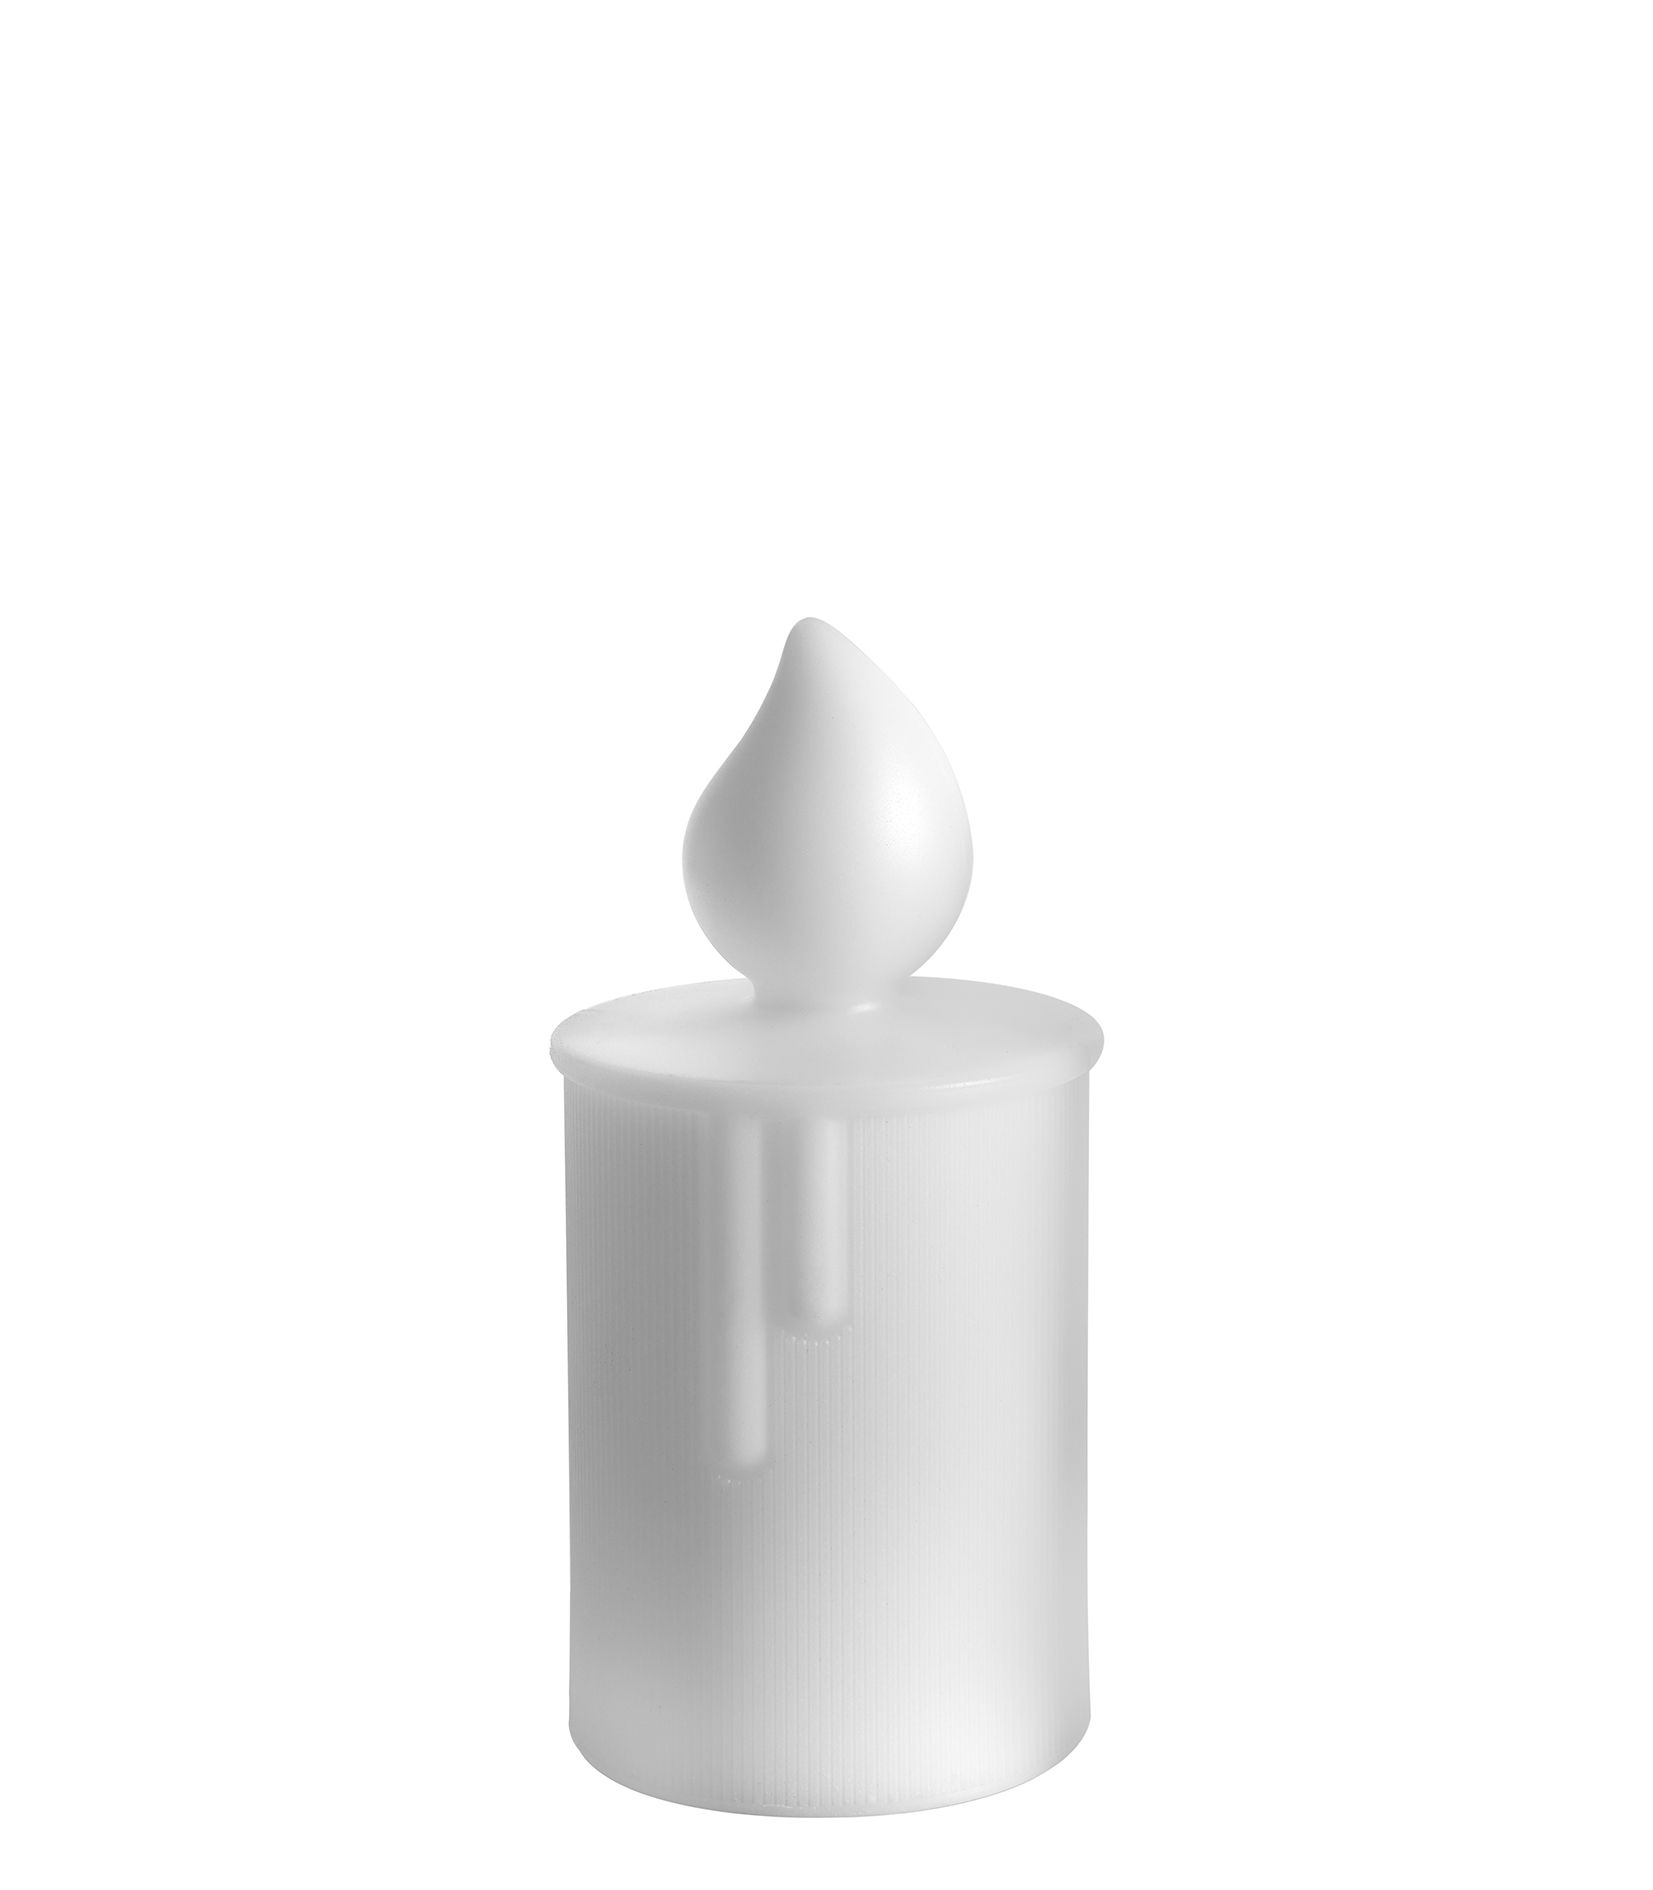 Lighting - Table Lamps - Fiammetta Table lamp - / H 22 cm by Slide - H 22 cm / White - recyclable polyethylene